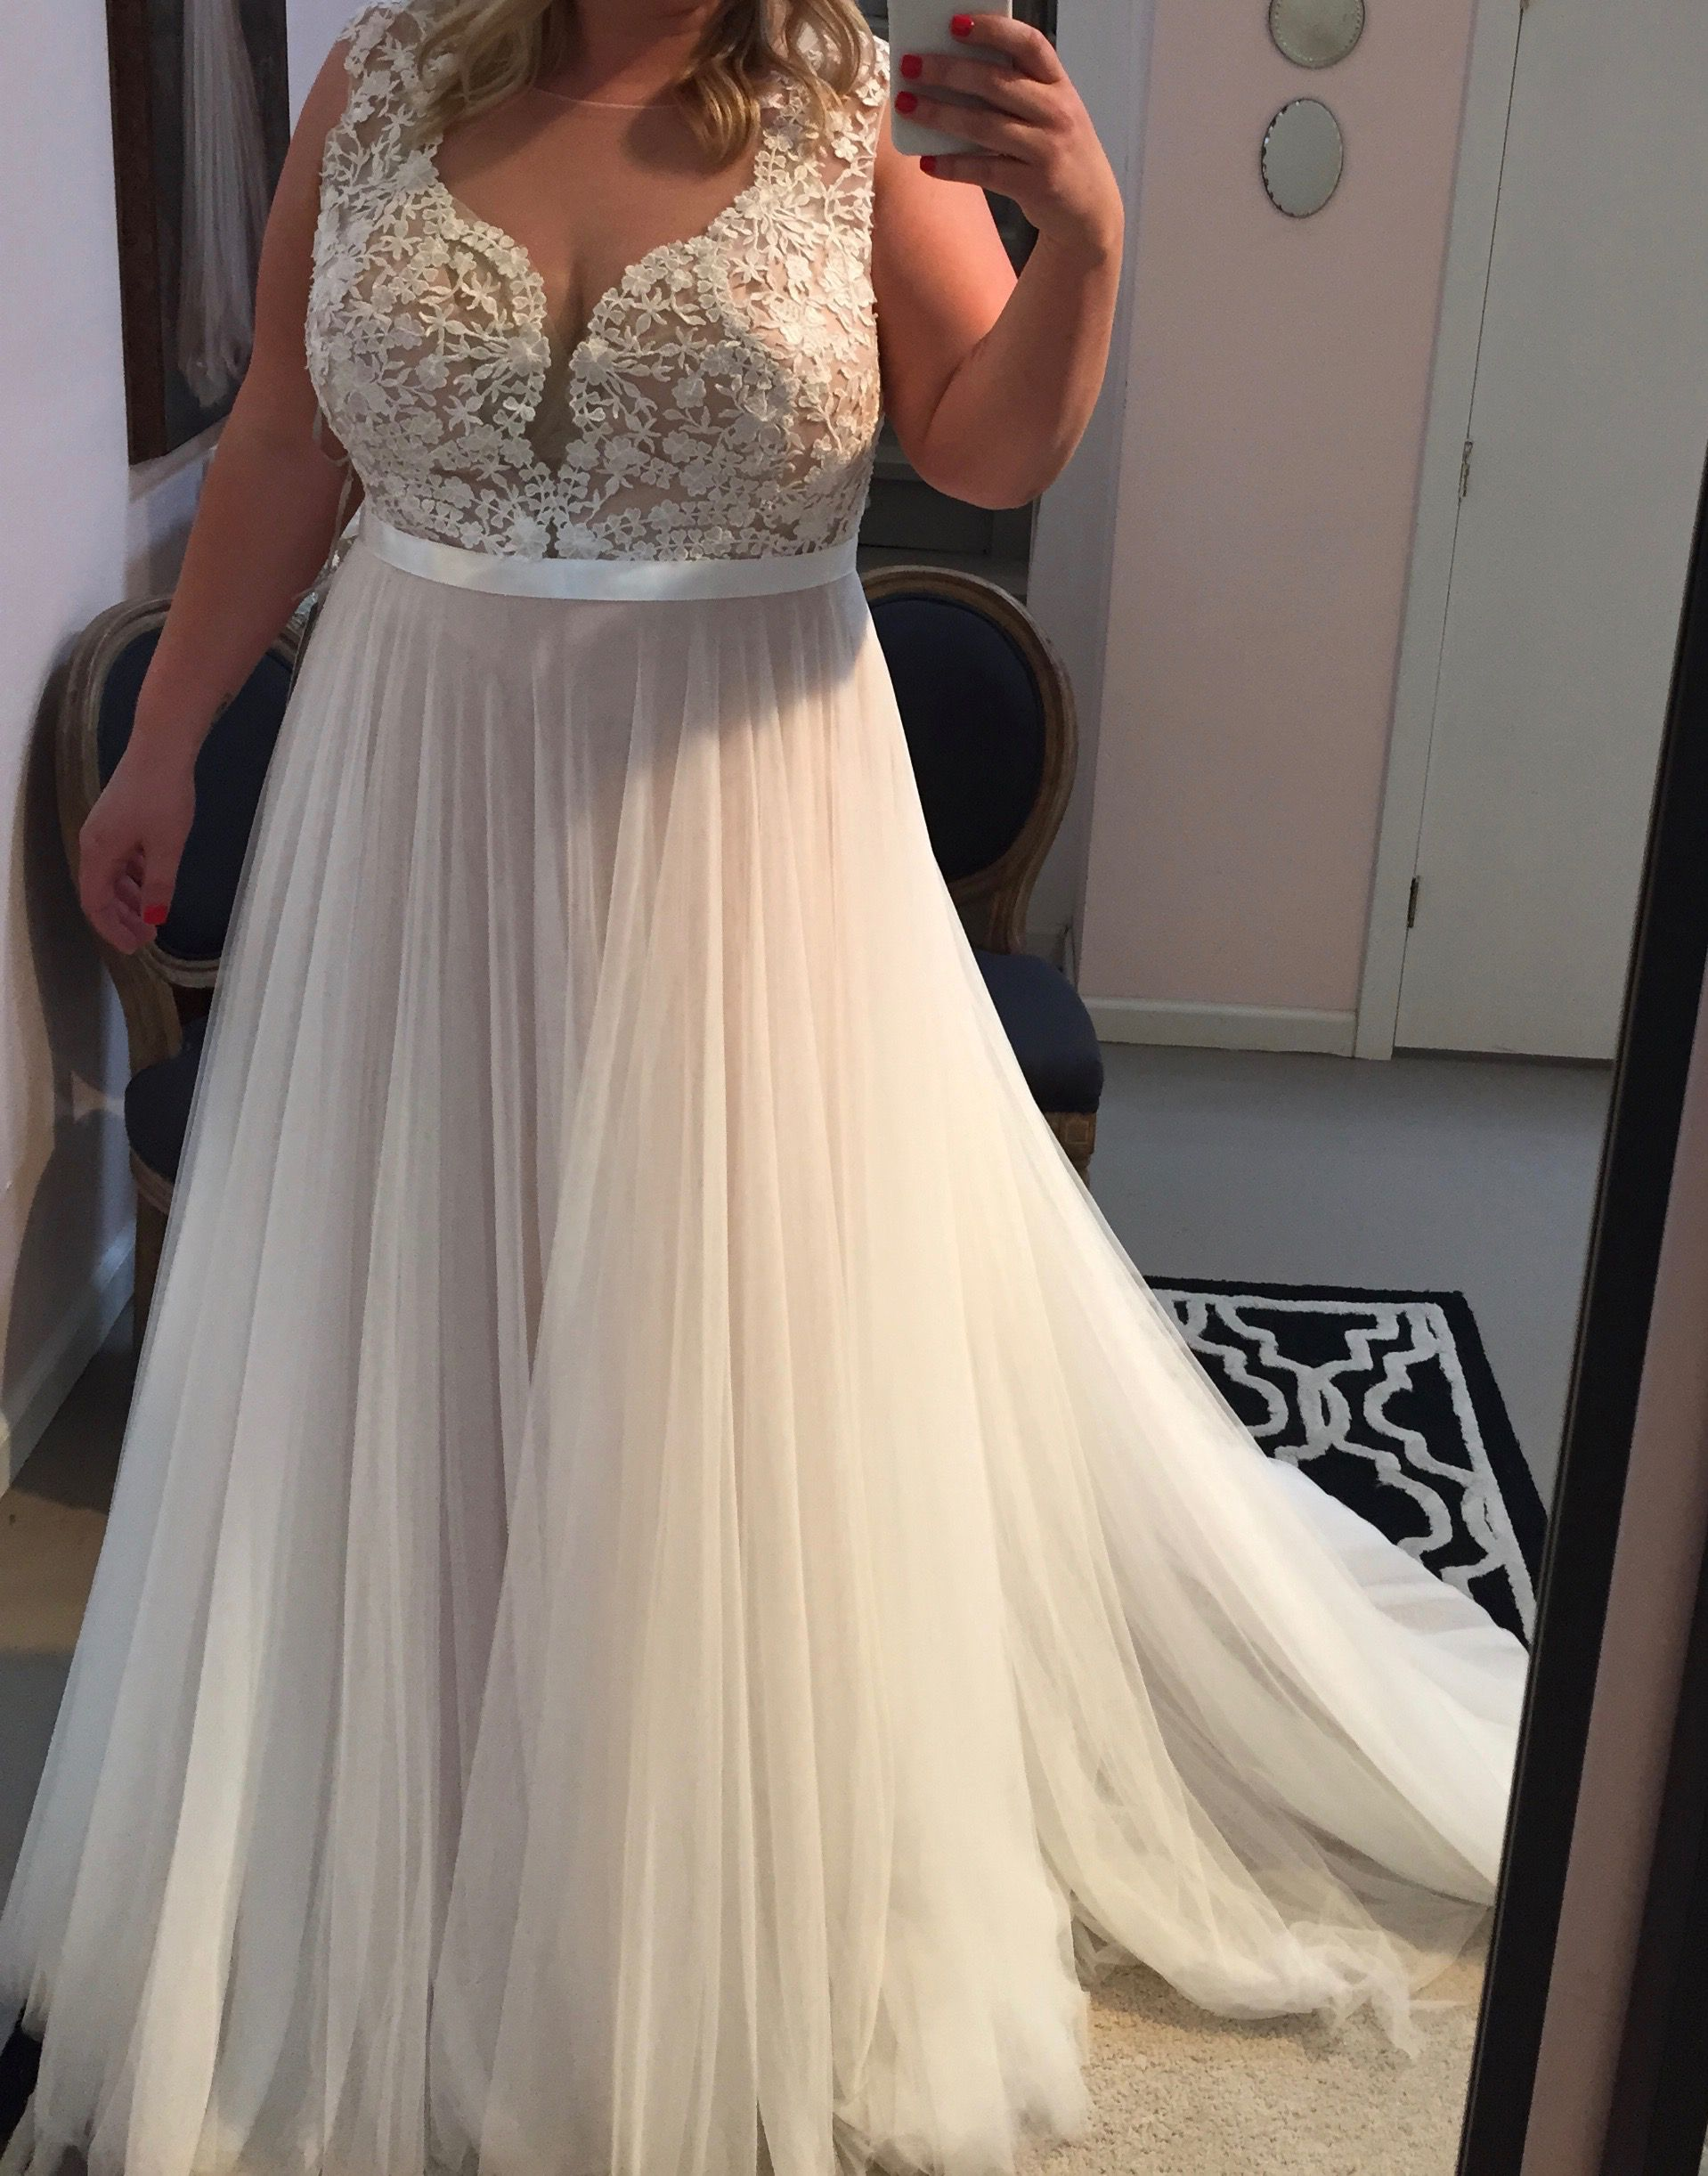 Summer Wedding Dresses Plus Size 4 at dresses - klimafup